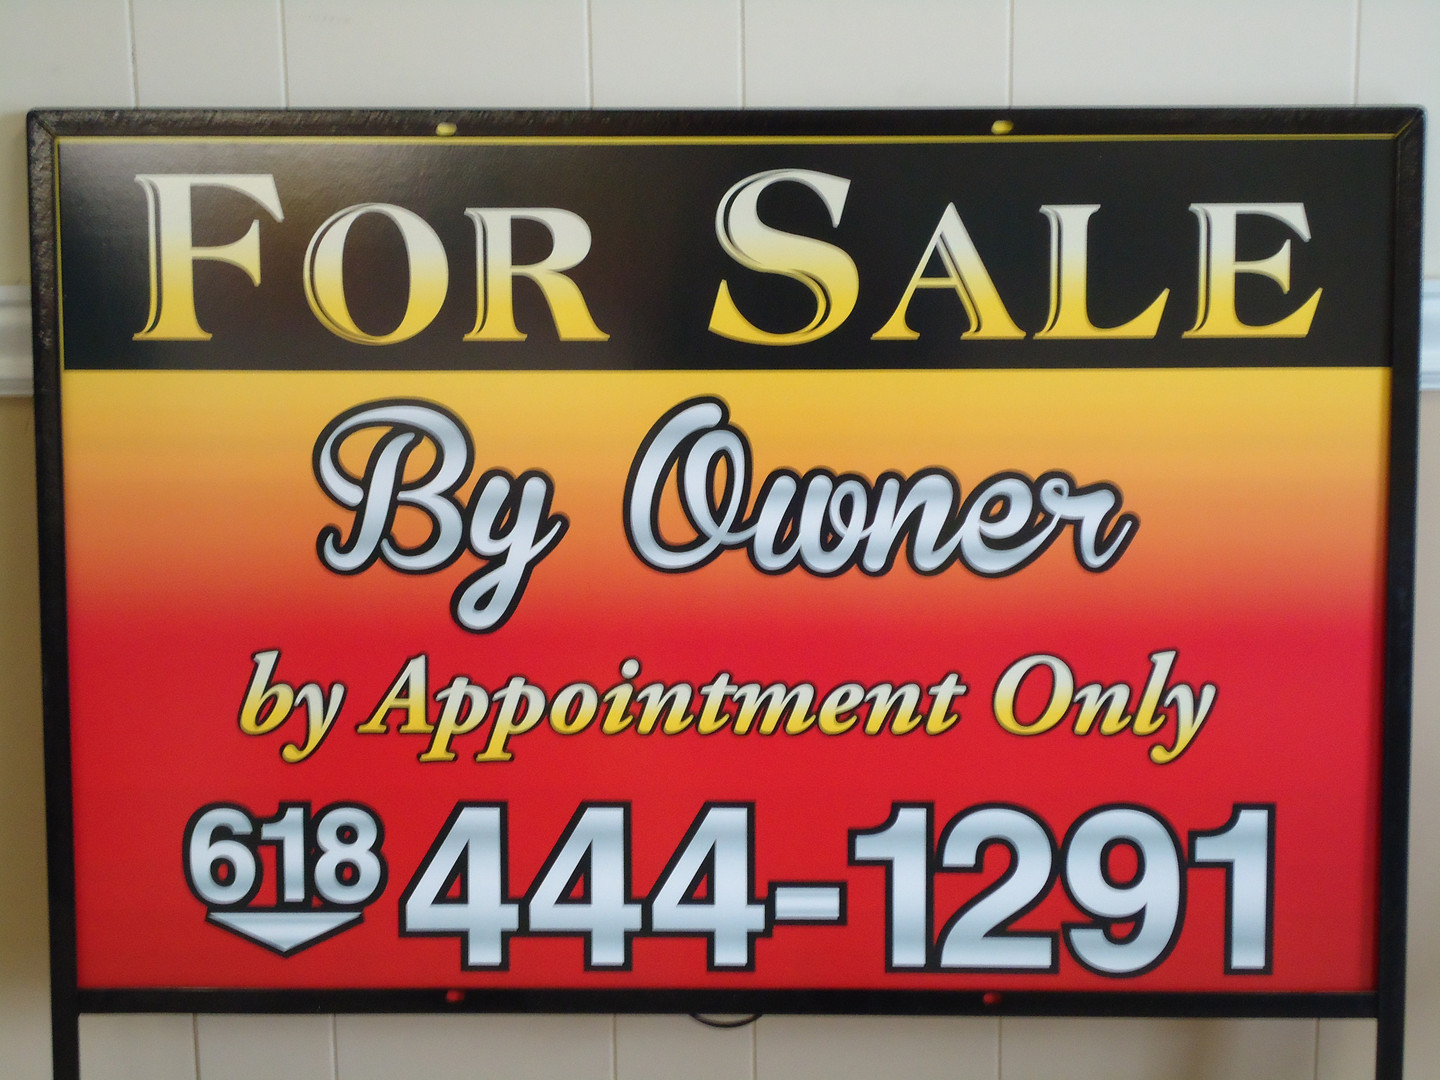 For Sale by Owner slip in